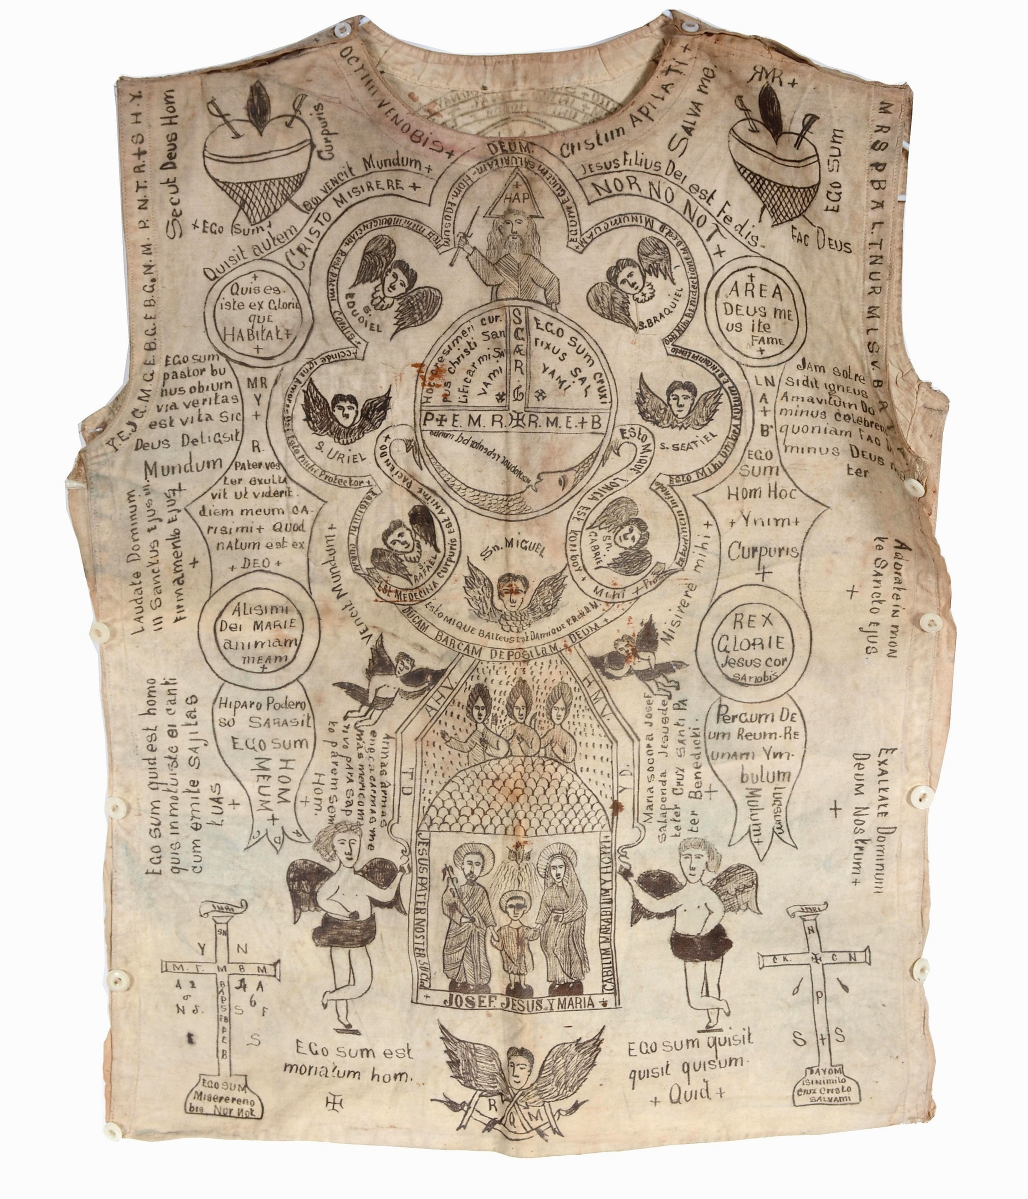 Selling for $8,750 was this religious vest with ink-drawn symbolism and Latin text. Slotin said it reminded him of flash art and was likely by a Hispanic artist.